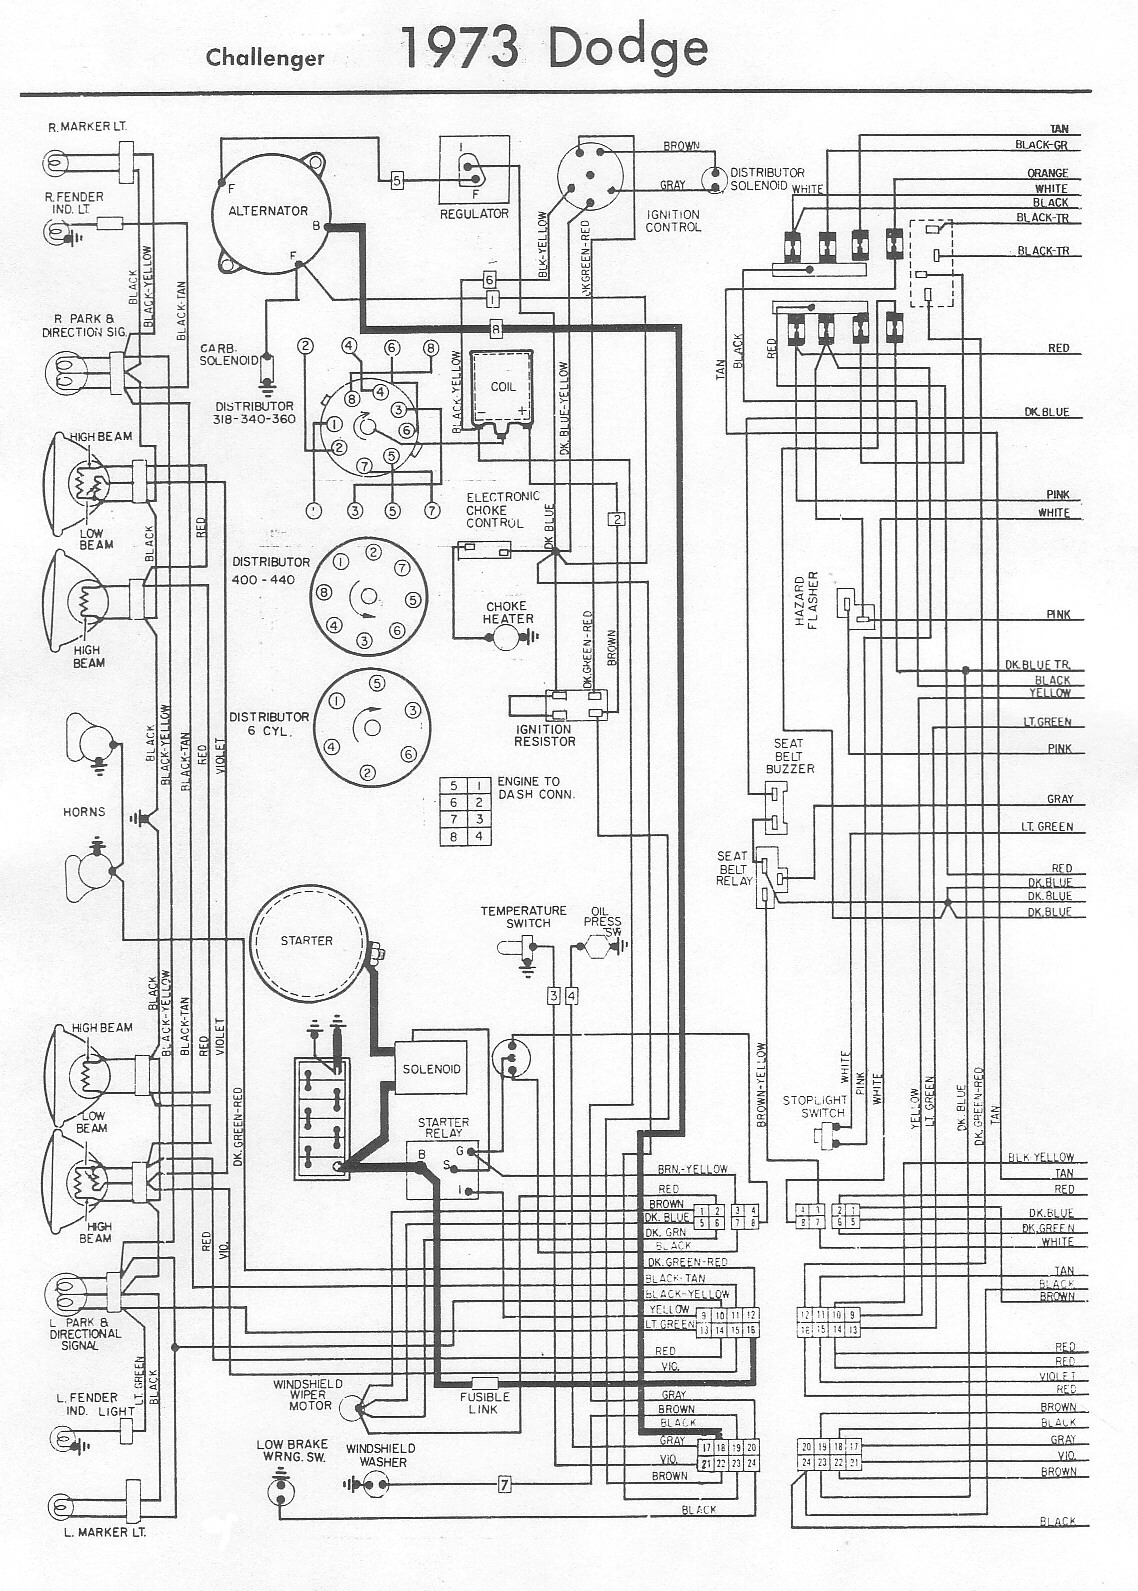 Dodge Challenger Wiring Diagram 2012 Charger Radio Image Not Found Or Type Unknown